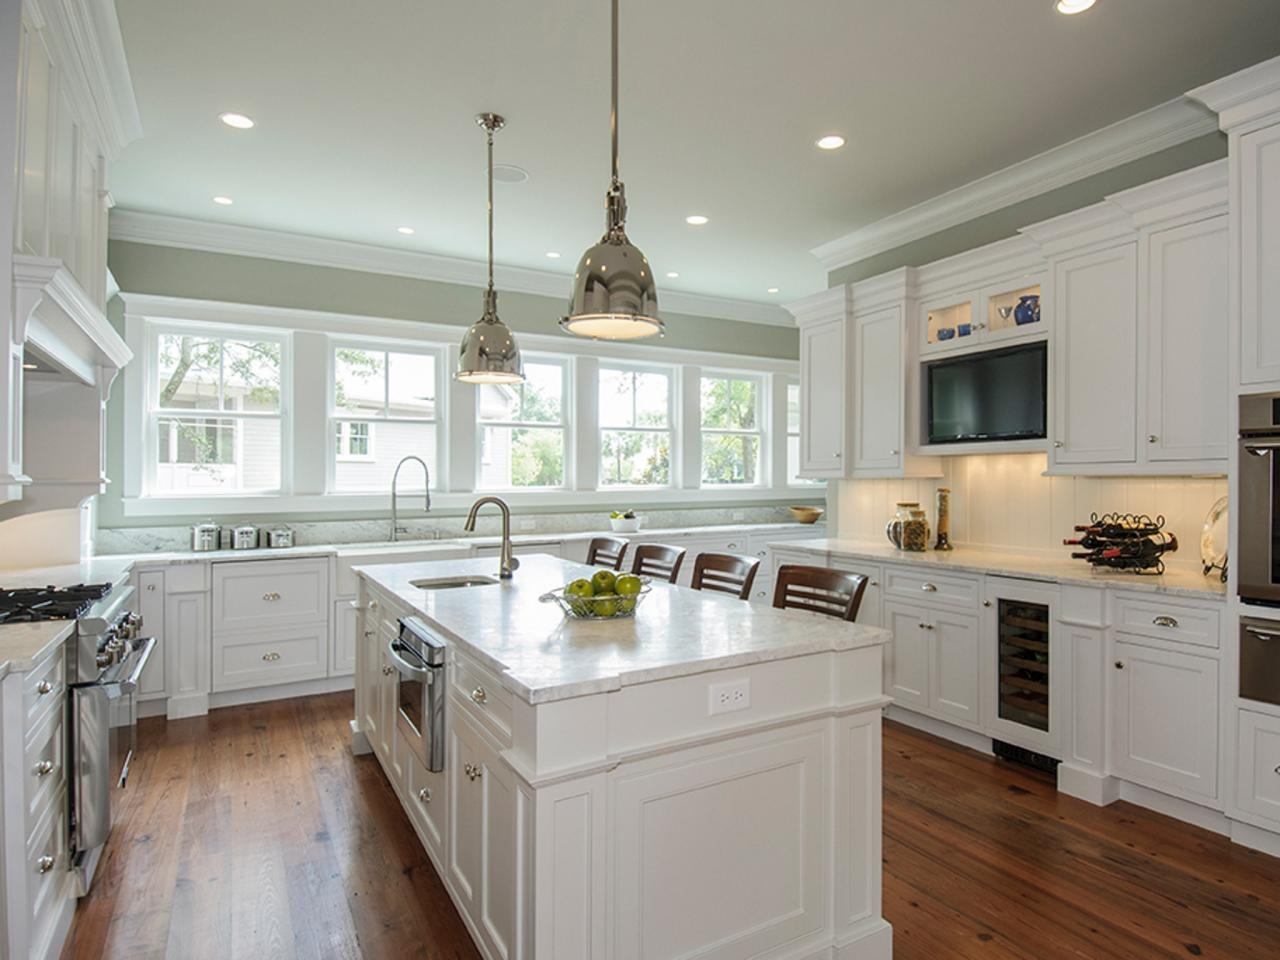 Perfect White Color For Kitchen Cabinets